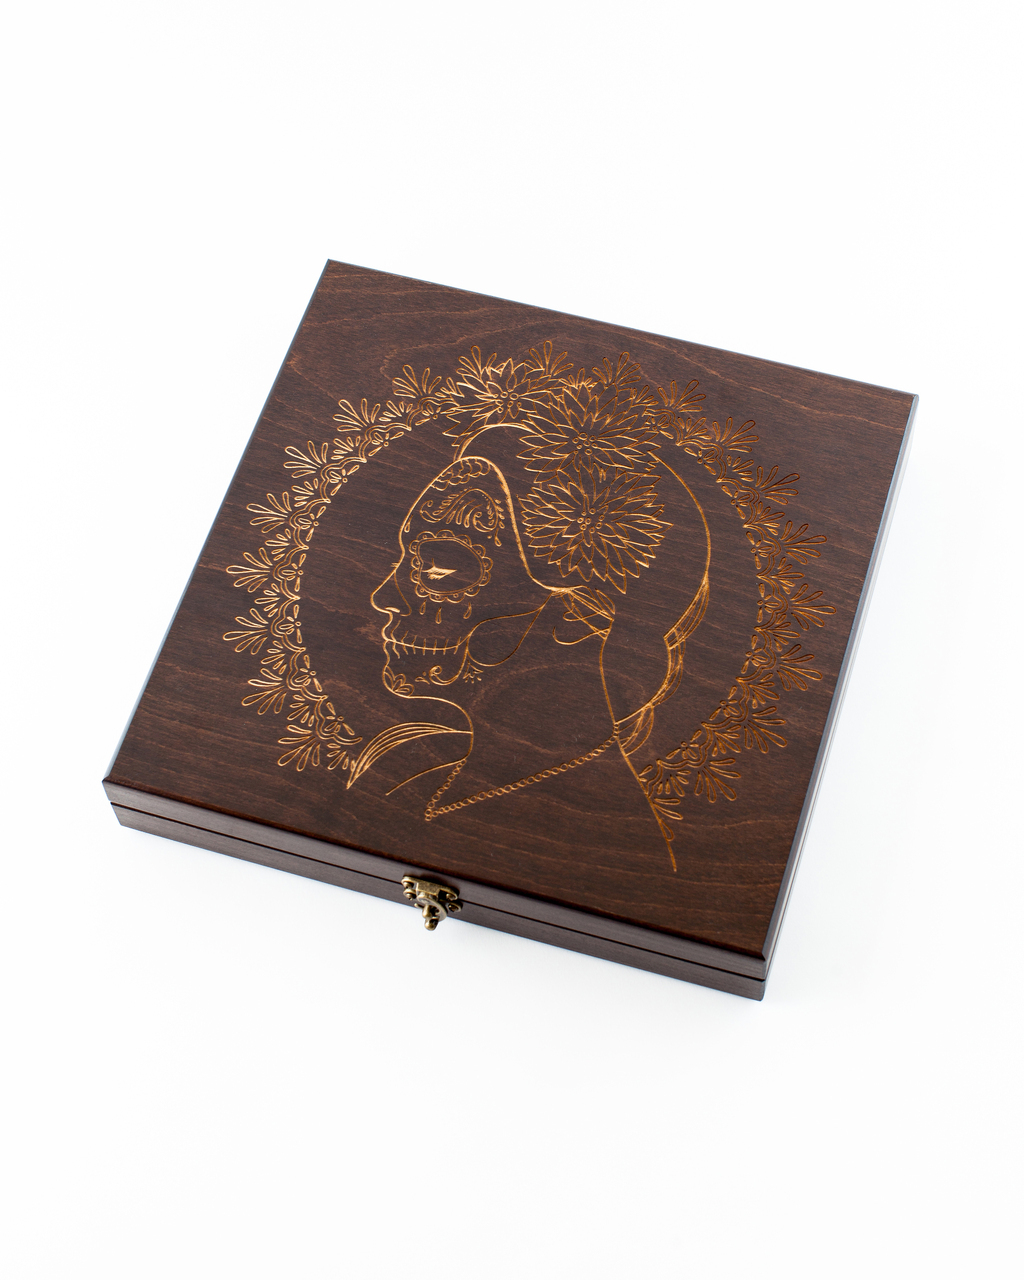 ji Calavera box set 1